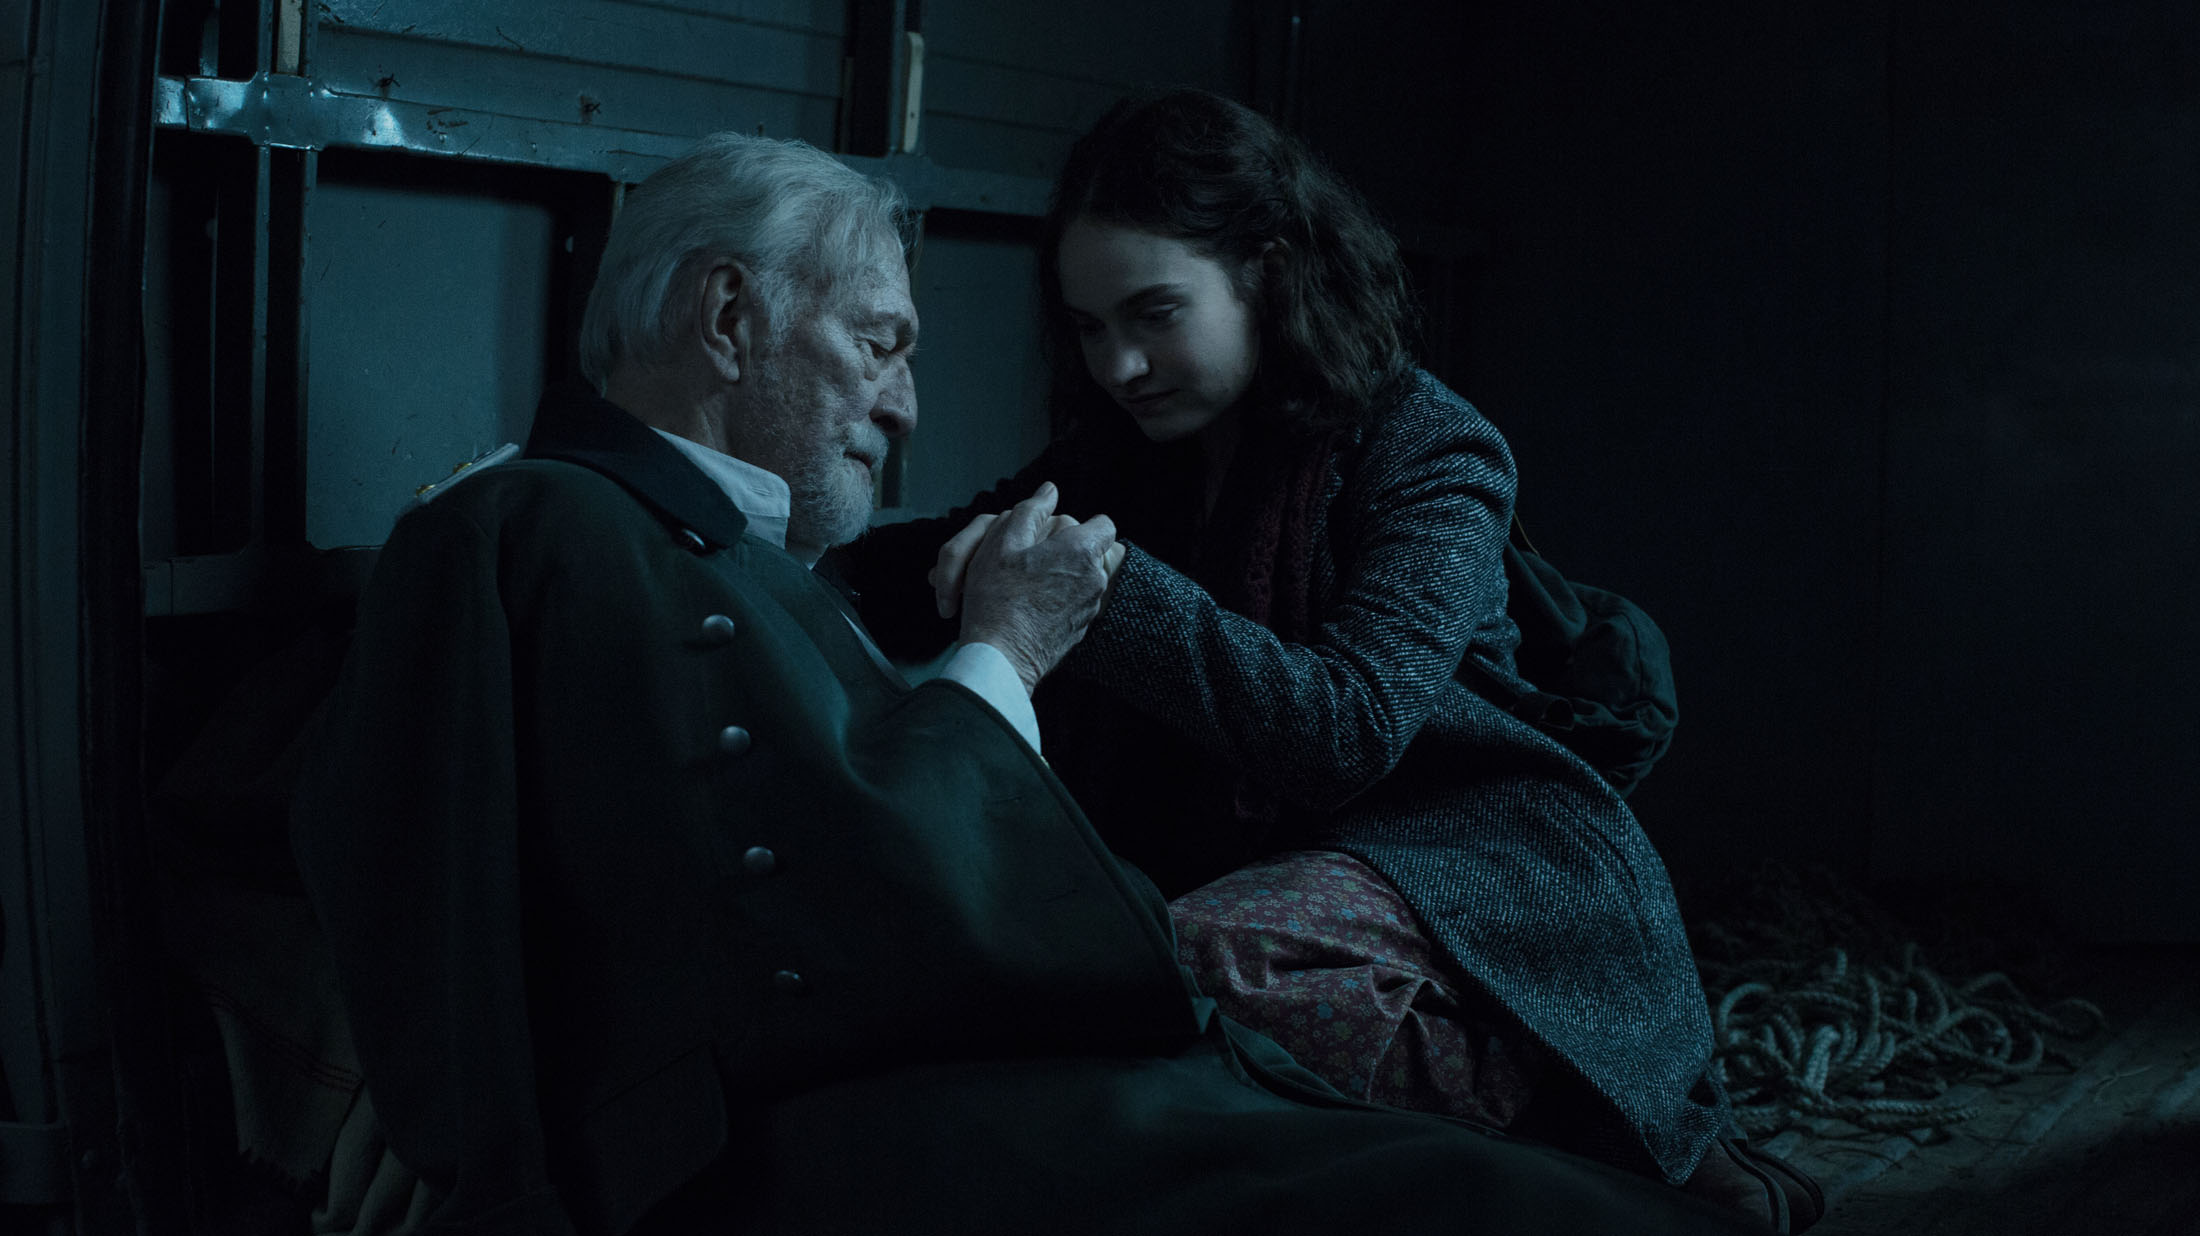 Christopher Plummer and Lilly James in THE EXCEPTION directed by David Leveaux - DoP Roman Osin. Courtesy Egoli Tossell Films/UMedia